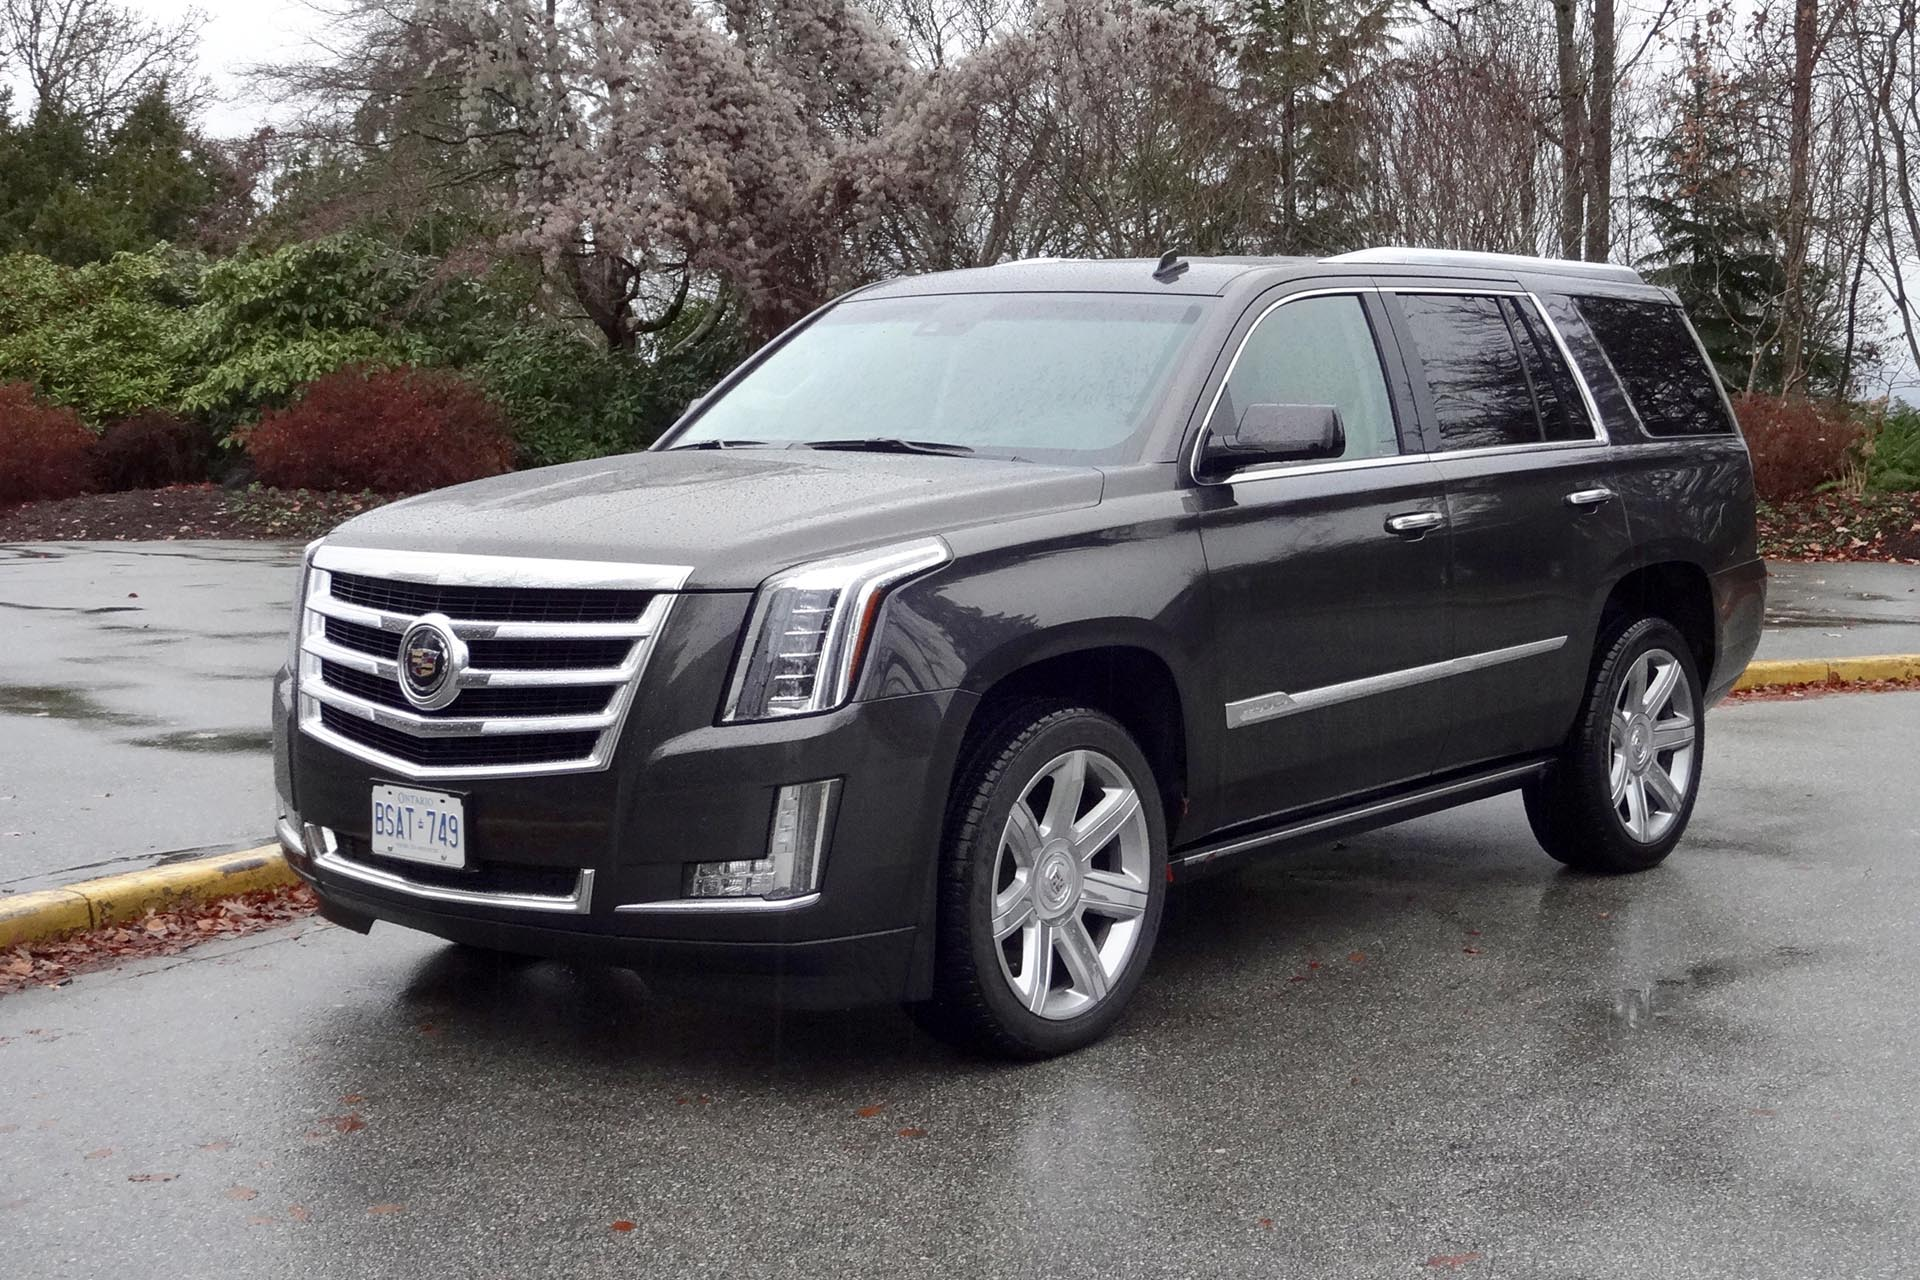 escalade cargurus cars suv awd pic cadillac for sale std overview dr